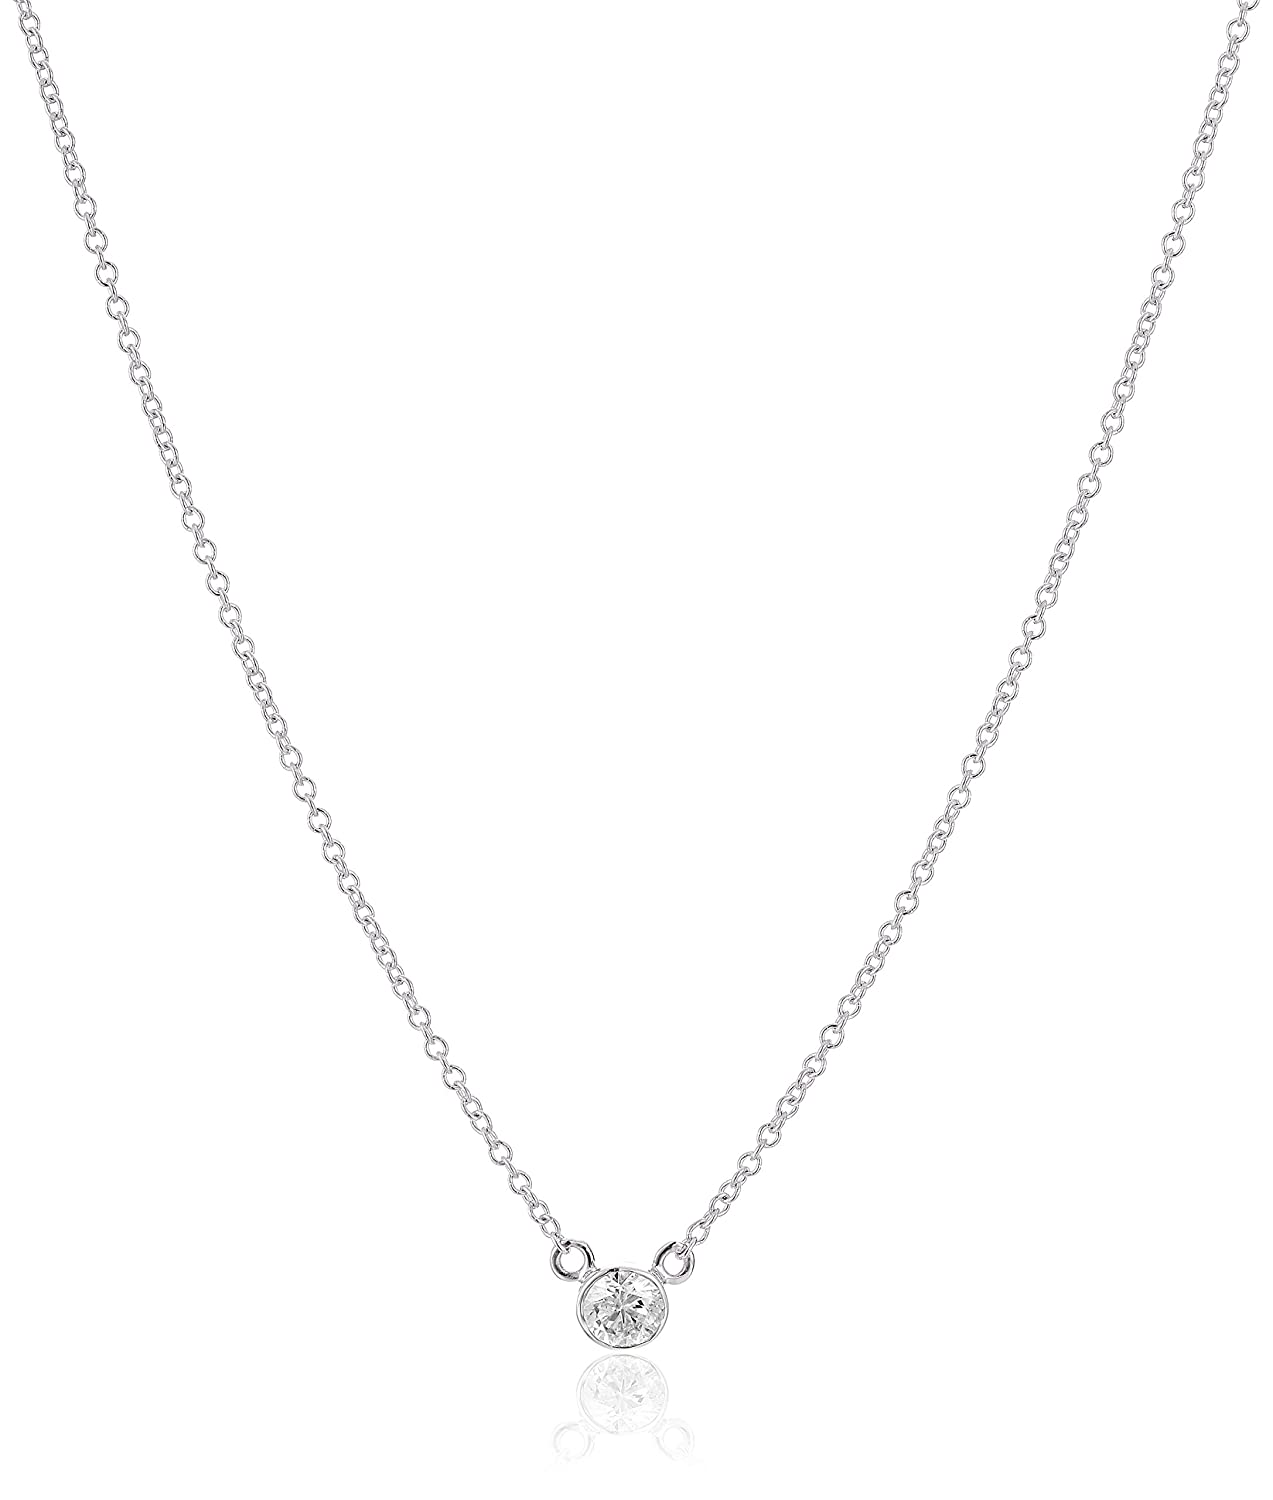 solitaire h tdw gold set white i pendant diamond products bezel necklace necklaceh